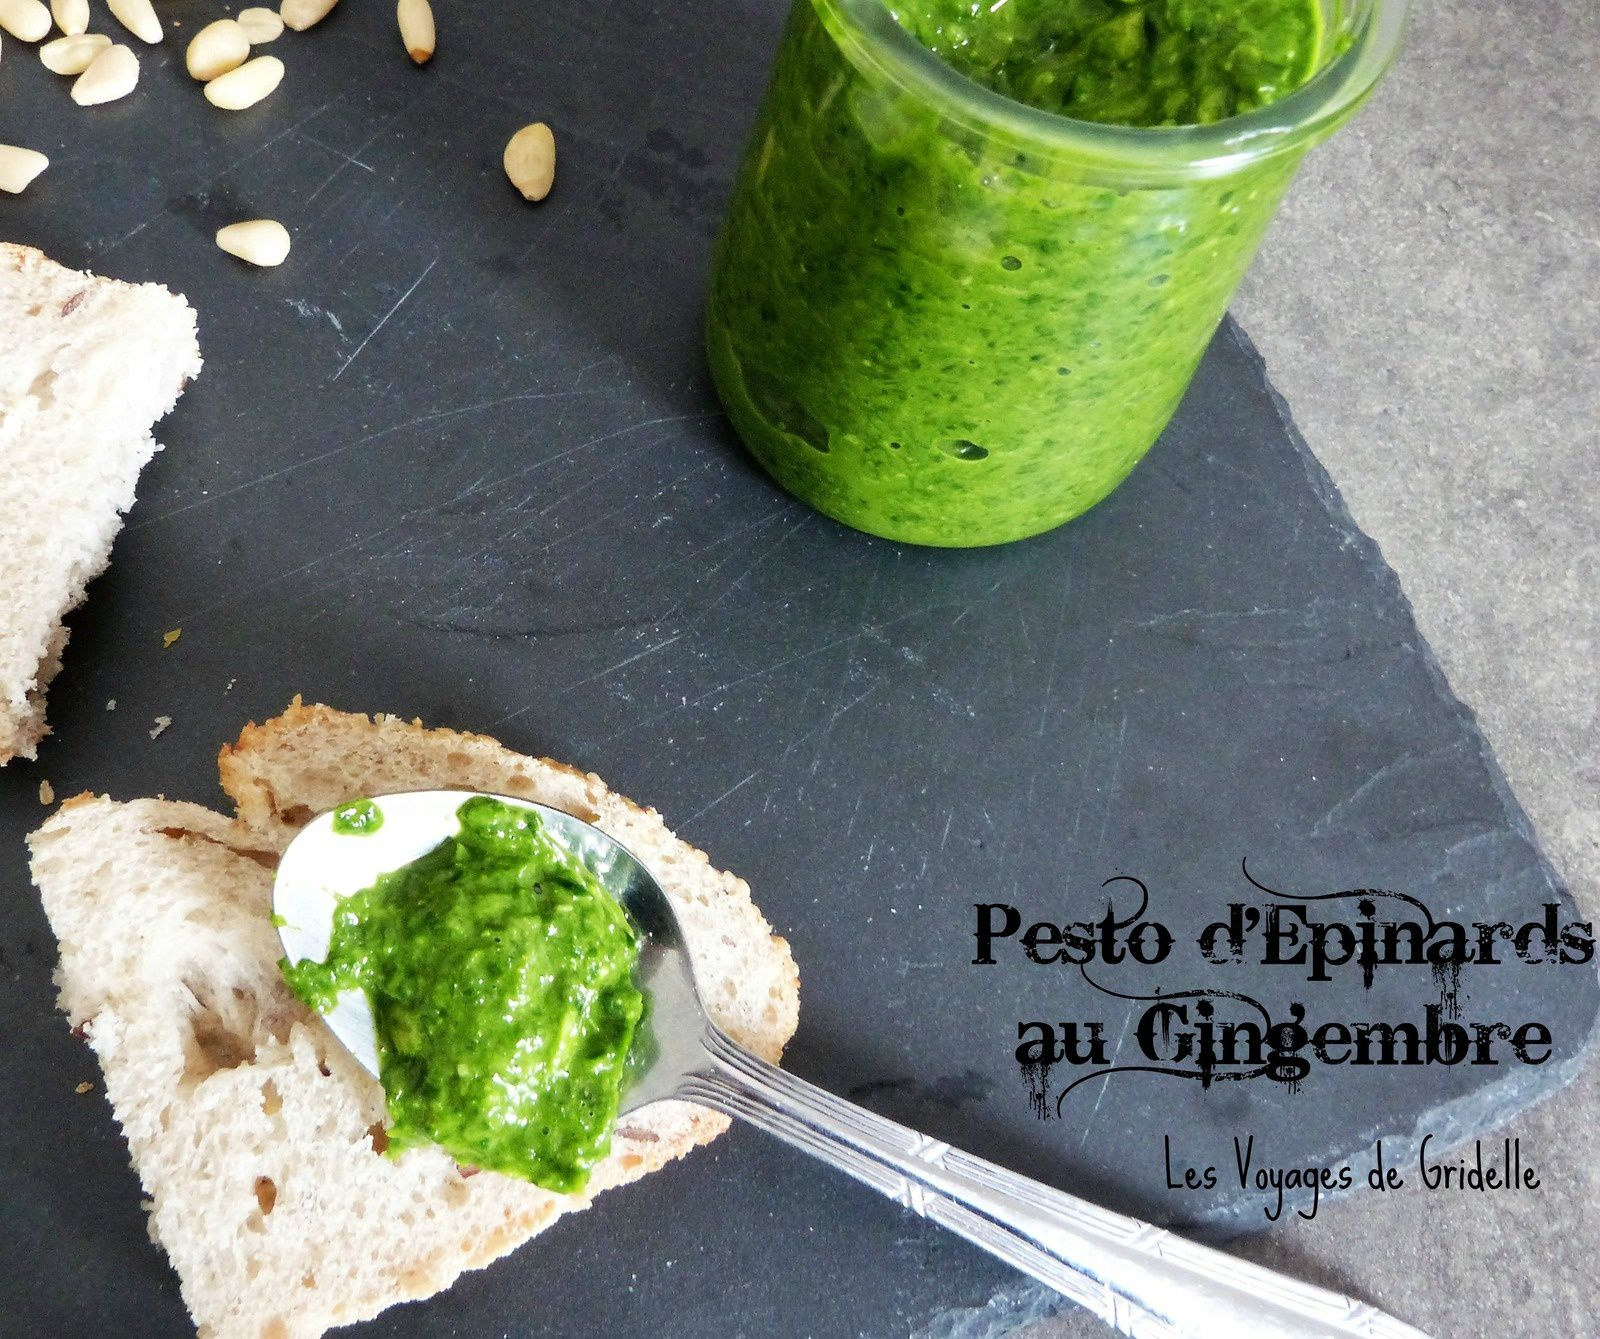 Pesto d'Epinards au Gingembre